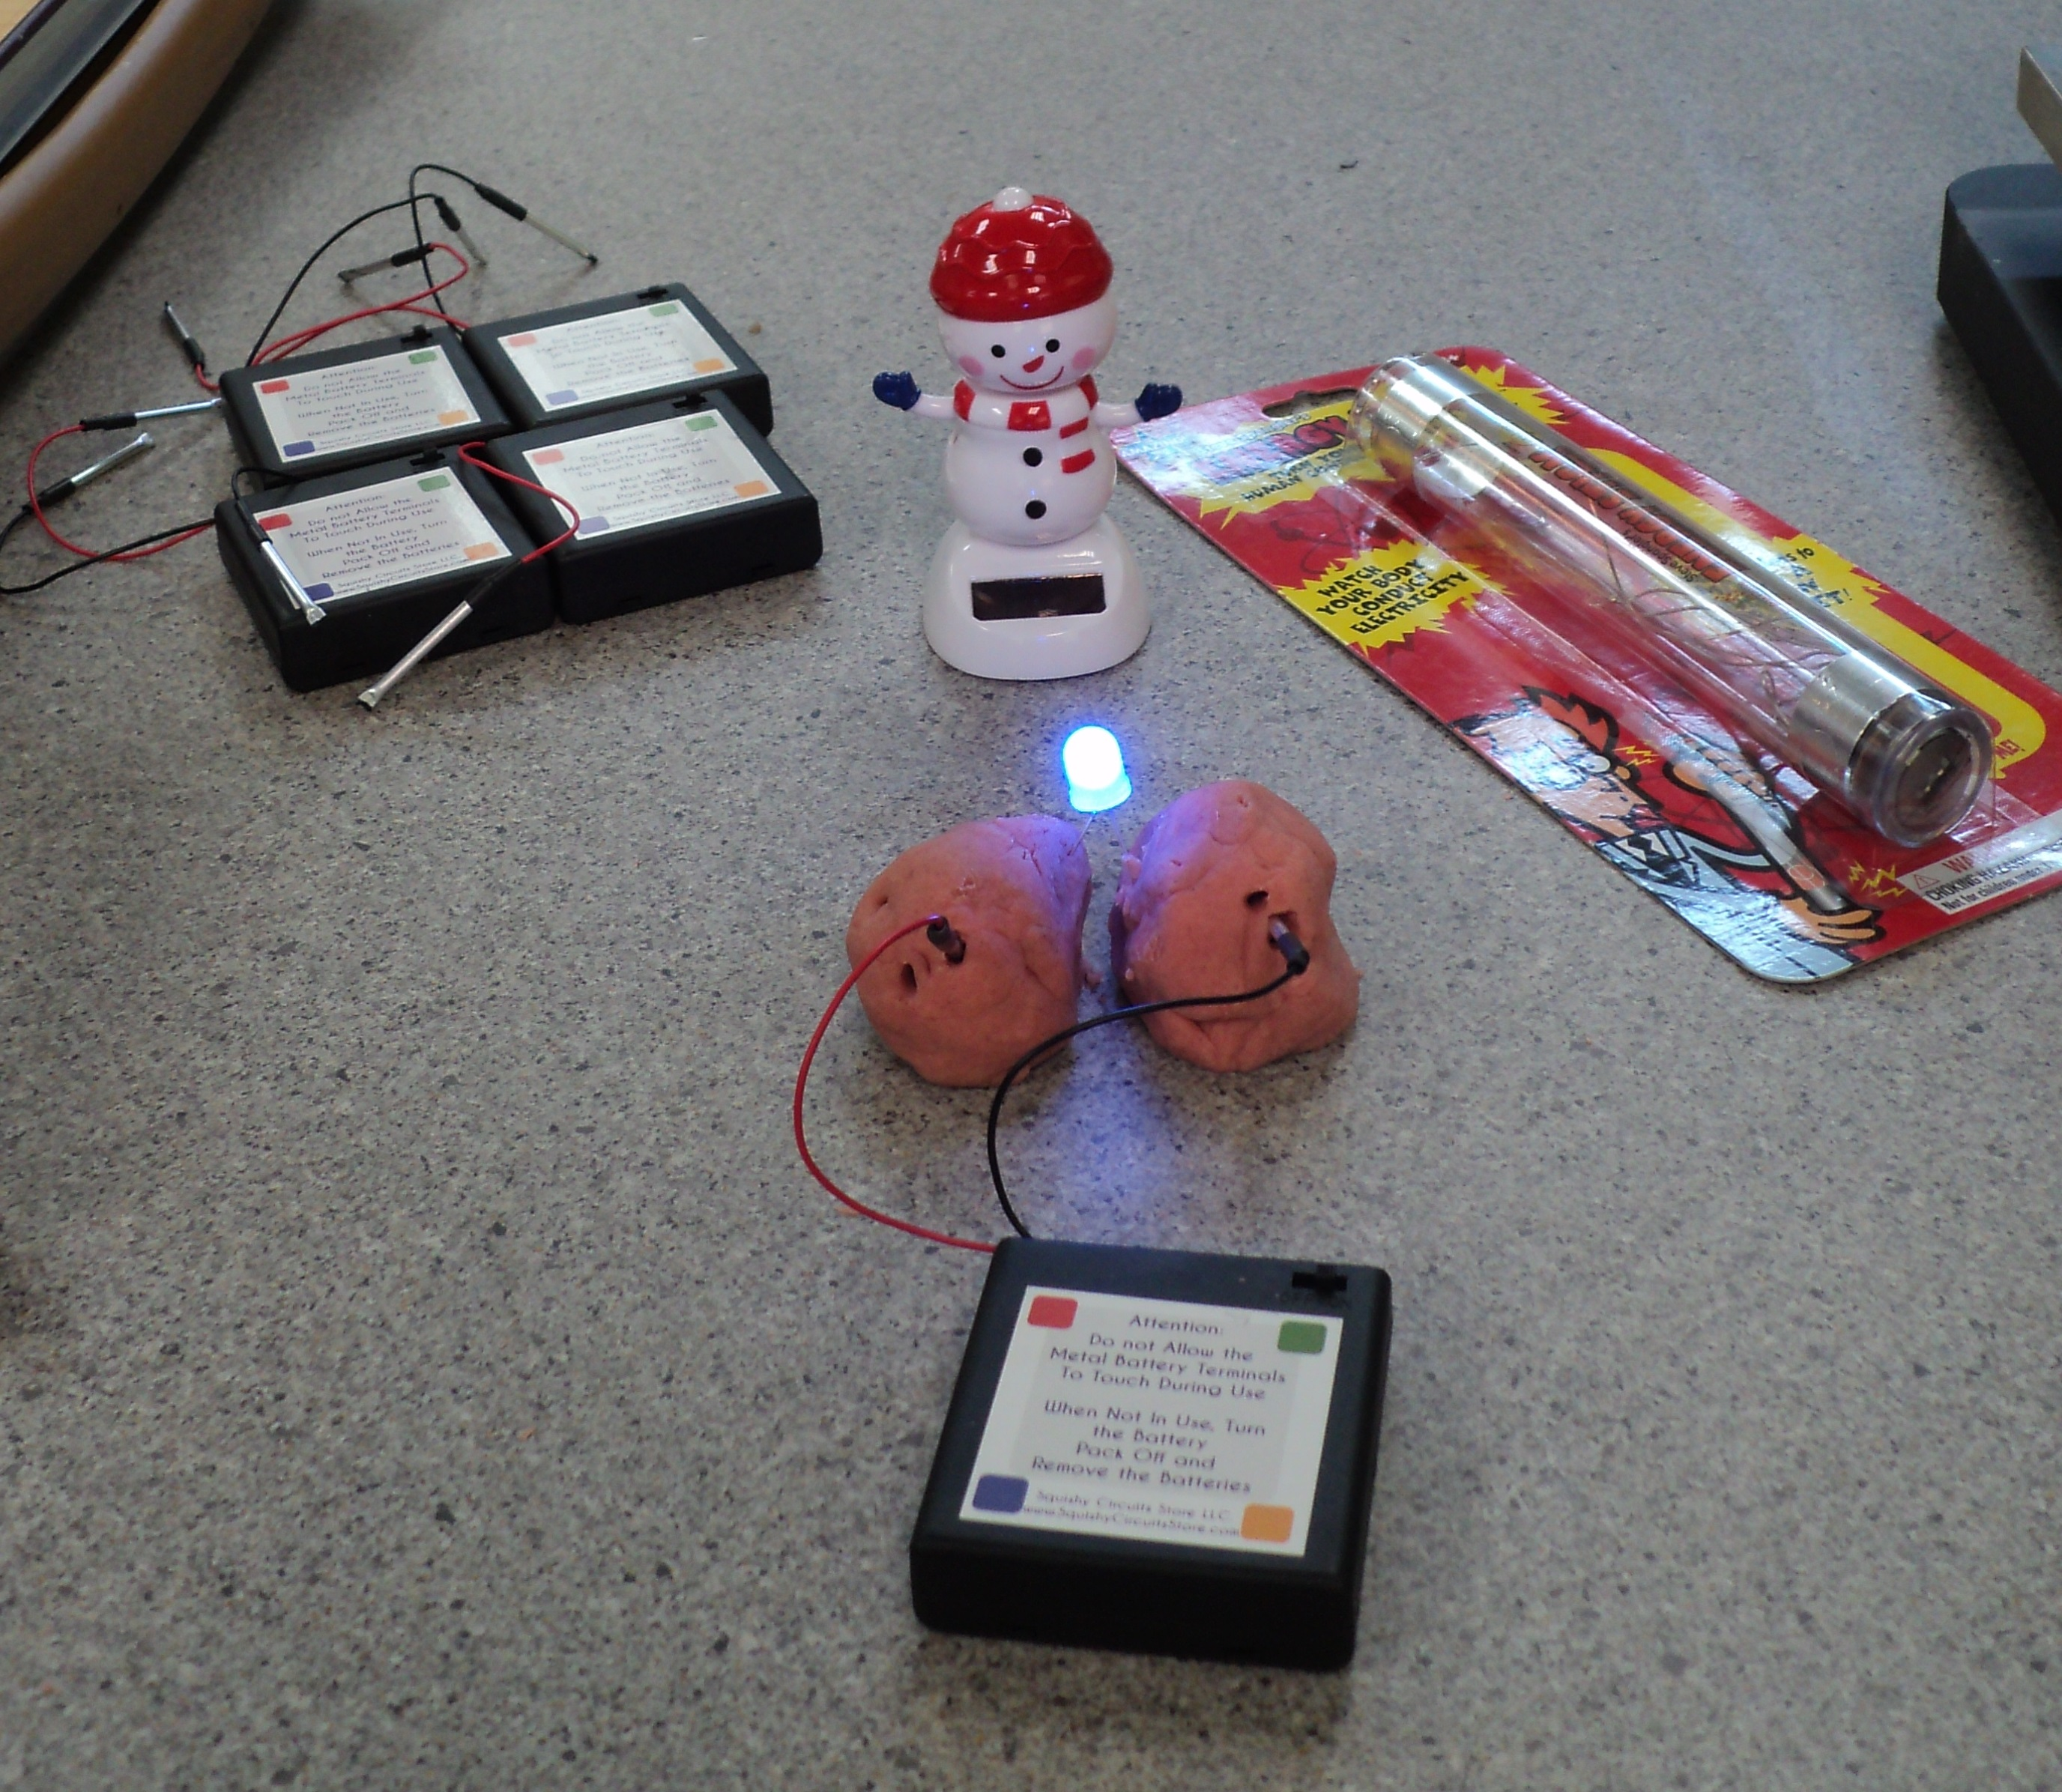 Electric Circuit School Project Http Imagineeringorguk Clubs